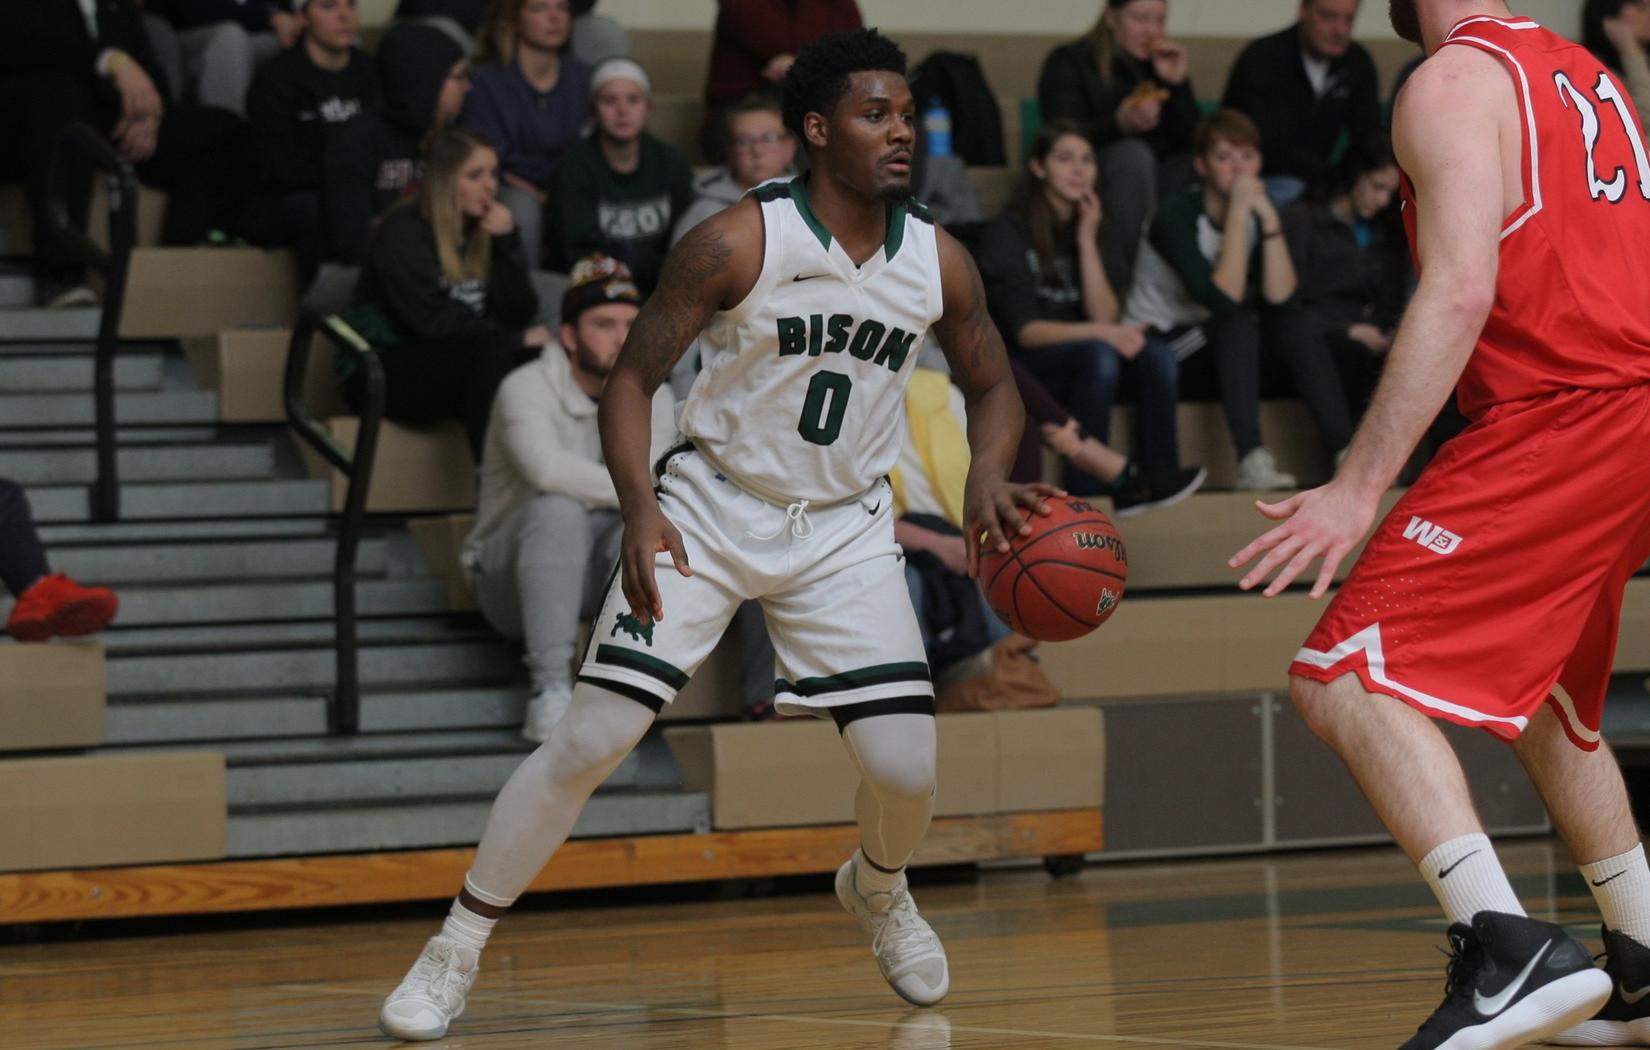 Bison rally falls short versus Medaille in ECAC Quarterfinals, 101-87